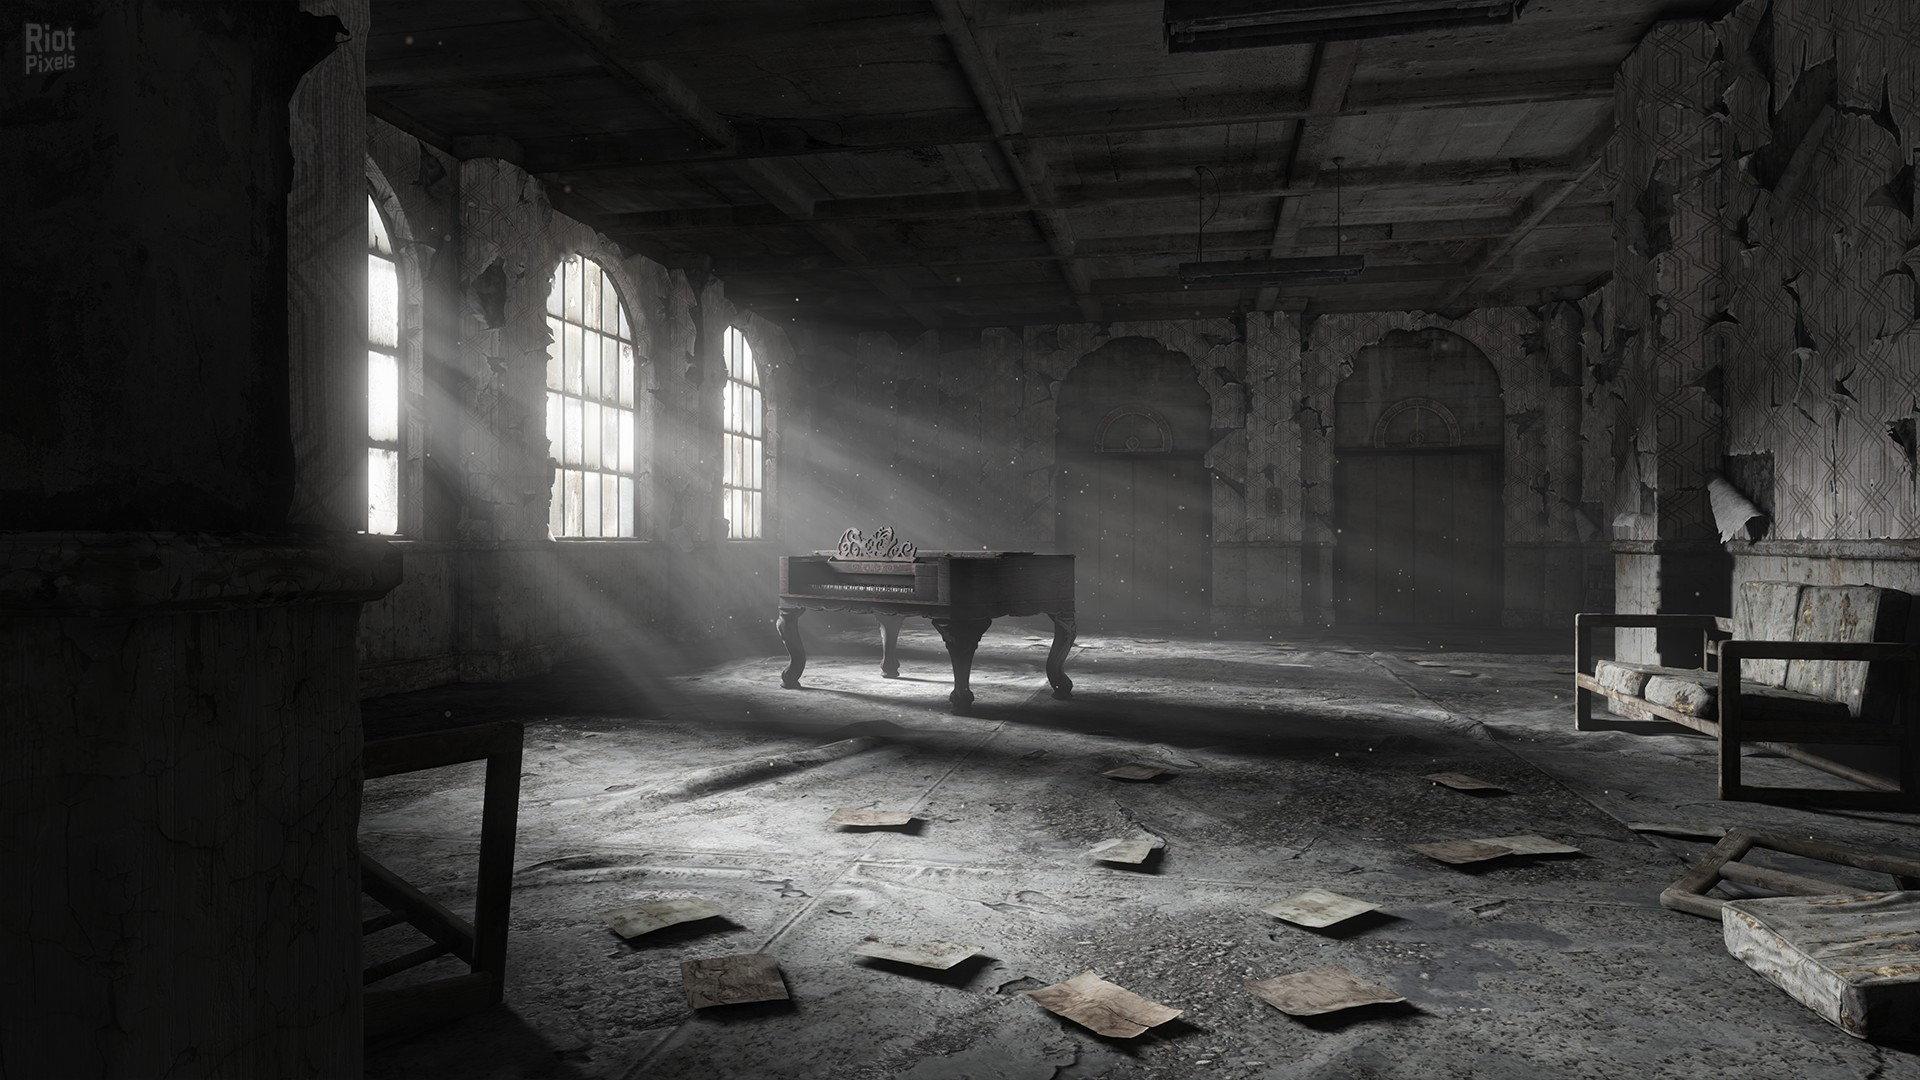 Abandoned Place Wallpaper Picture hd